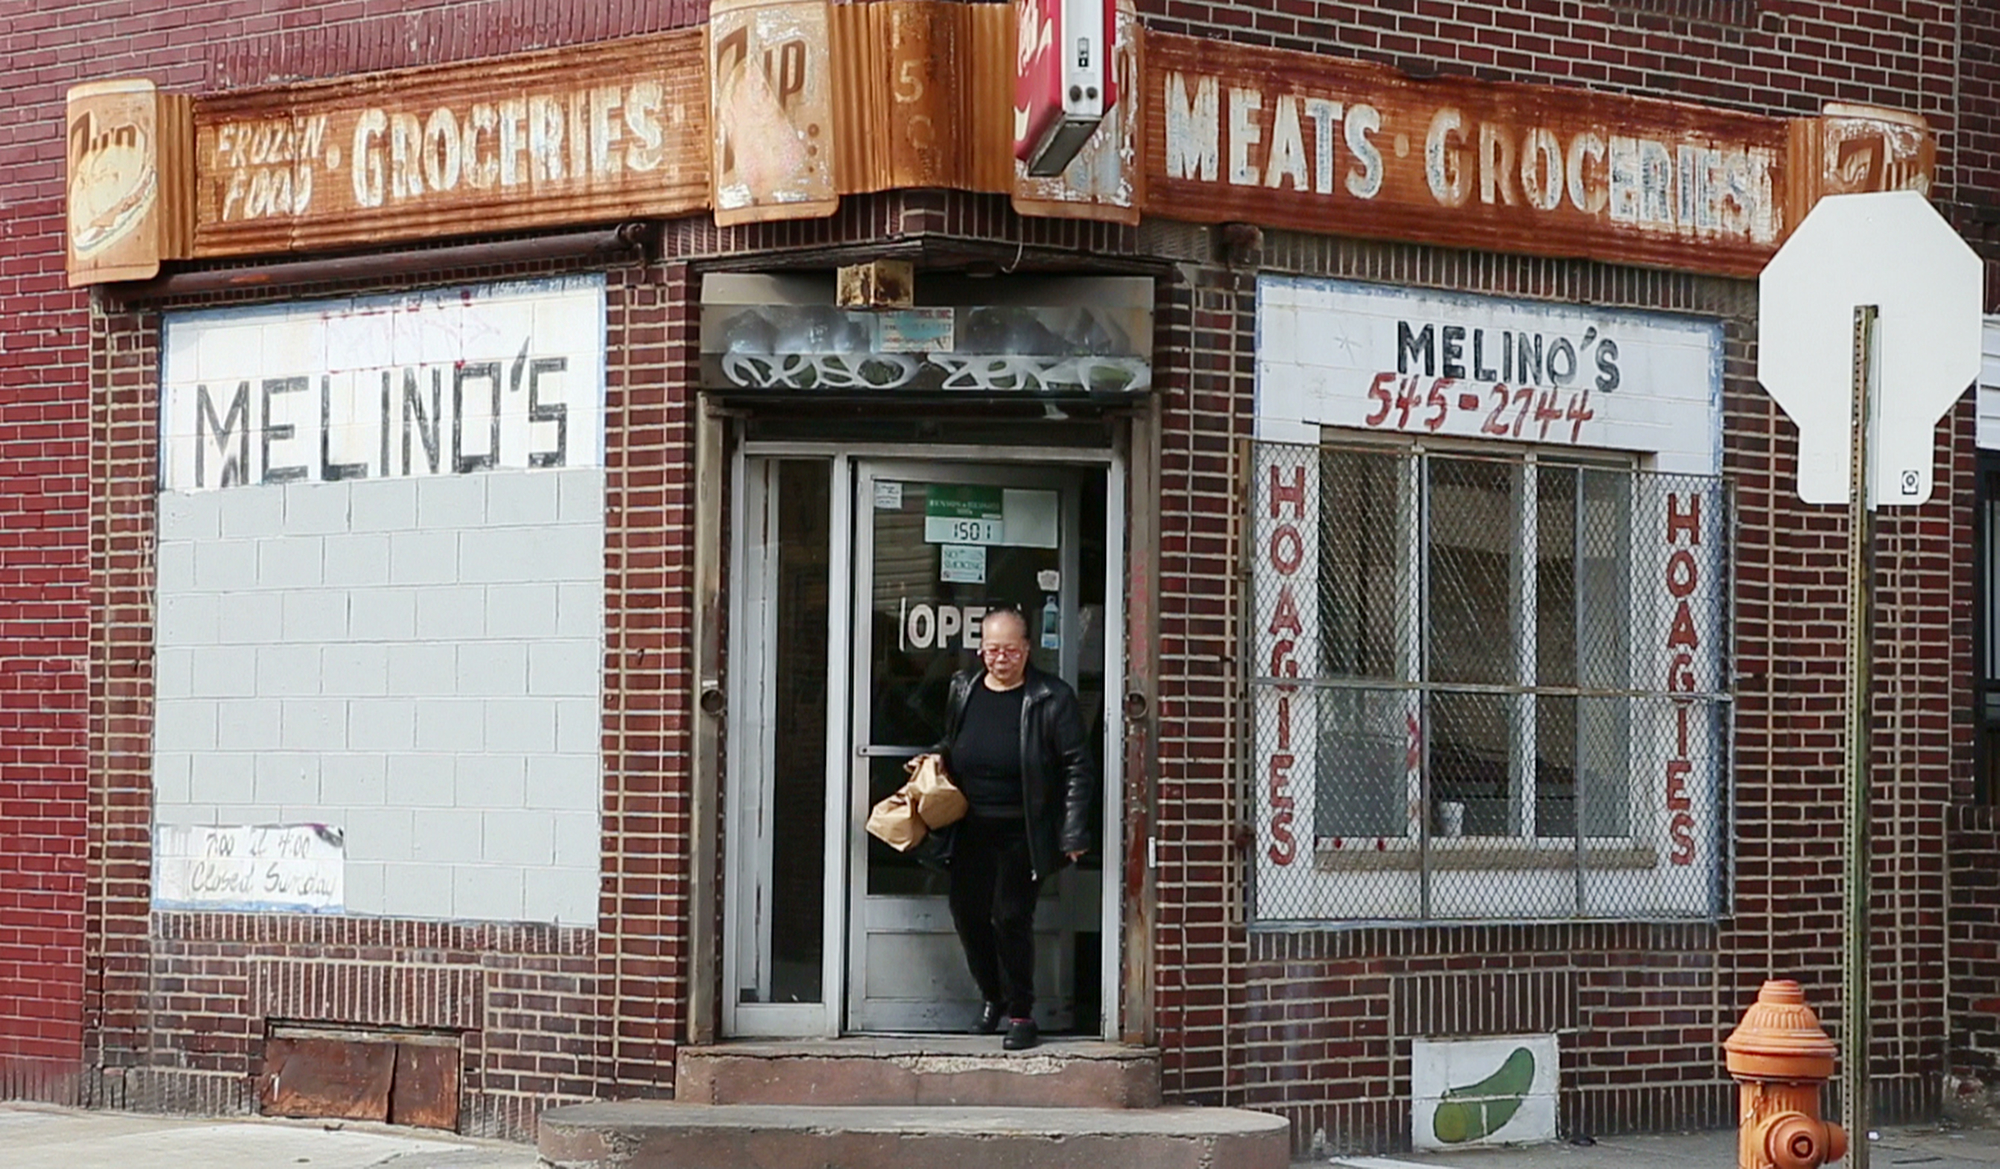 A customer exits Melino's Hoagie shop on the 1100 block of South 15th Street, March 20, 2014.